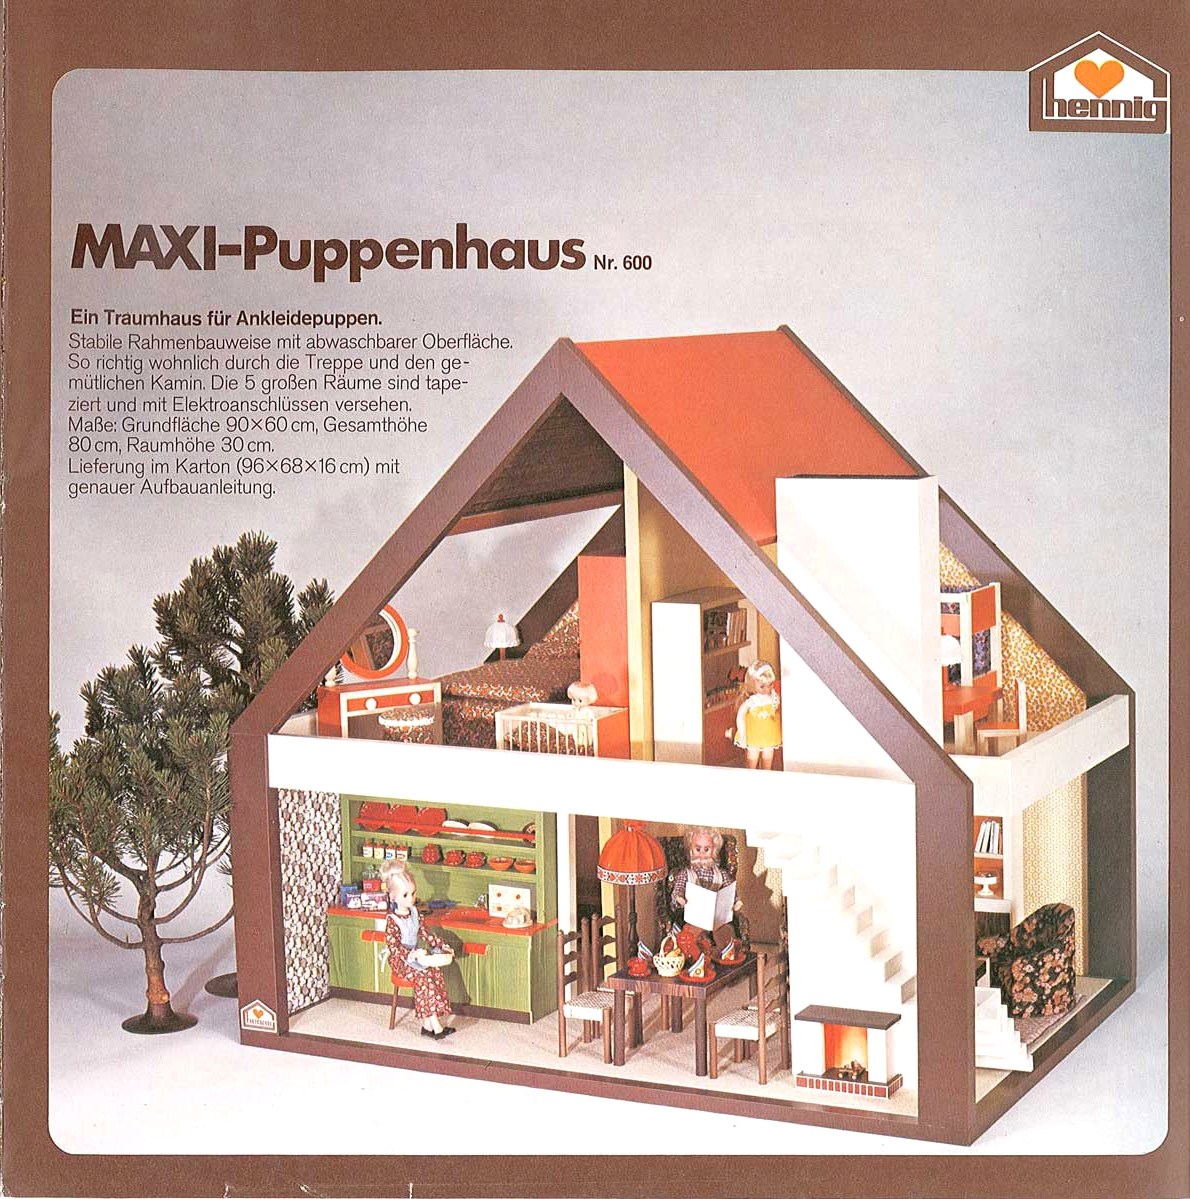 diepuppenstubensammlerin maxi puppenhaus 1977 bodo hennig maxi dollhouse. Black Bedroom Furniture Sets. Home Design Ideas